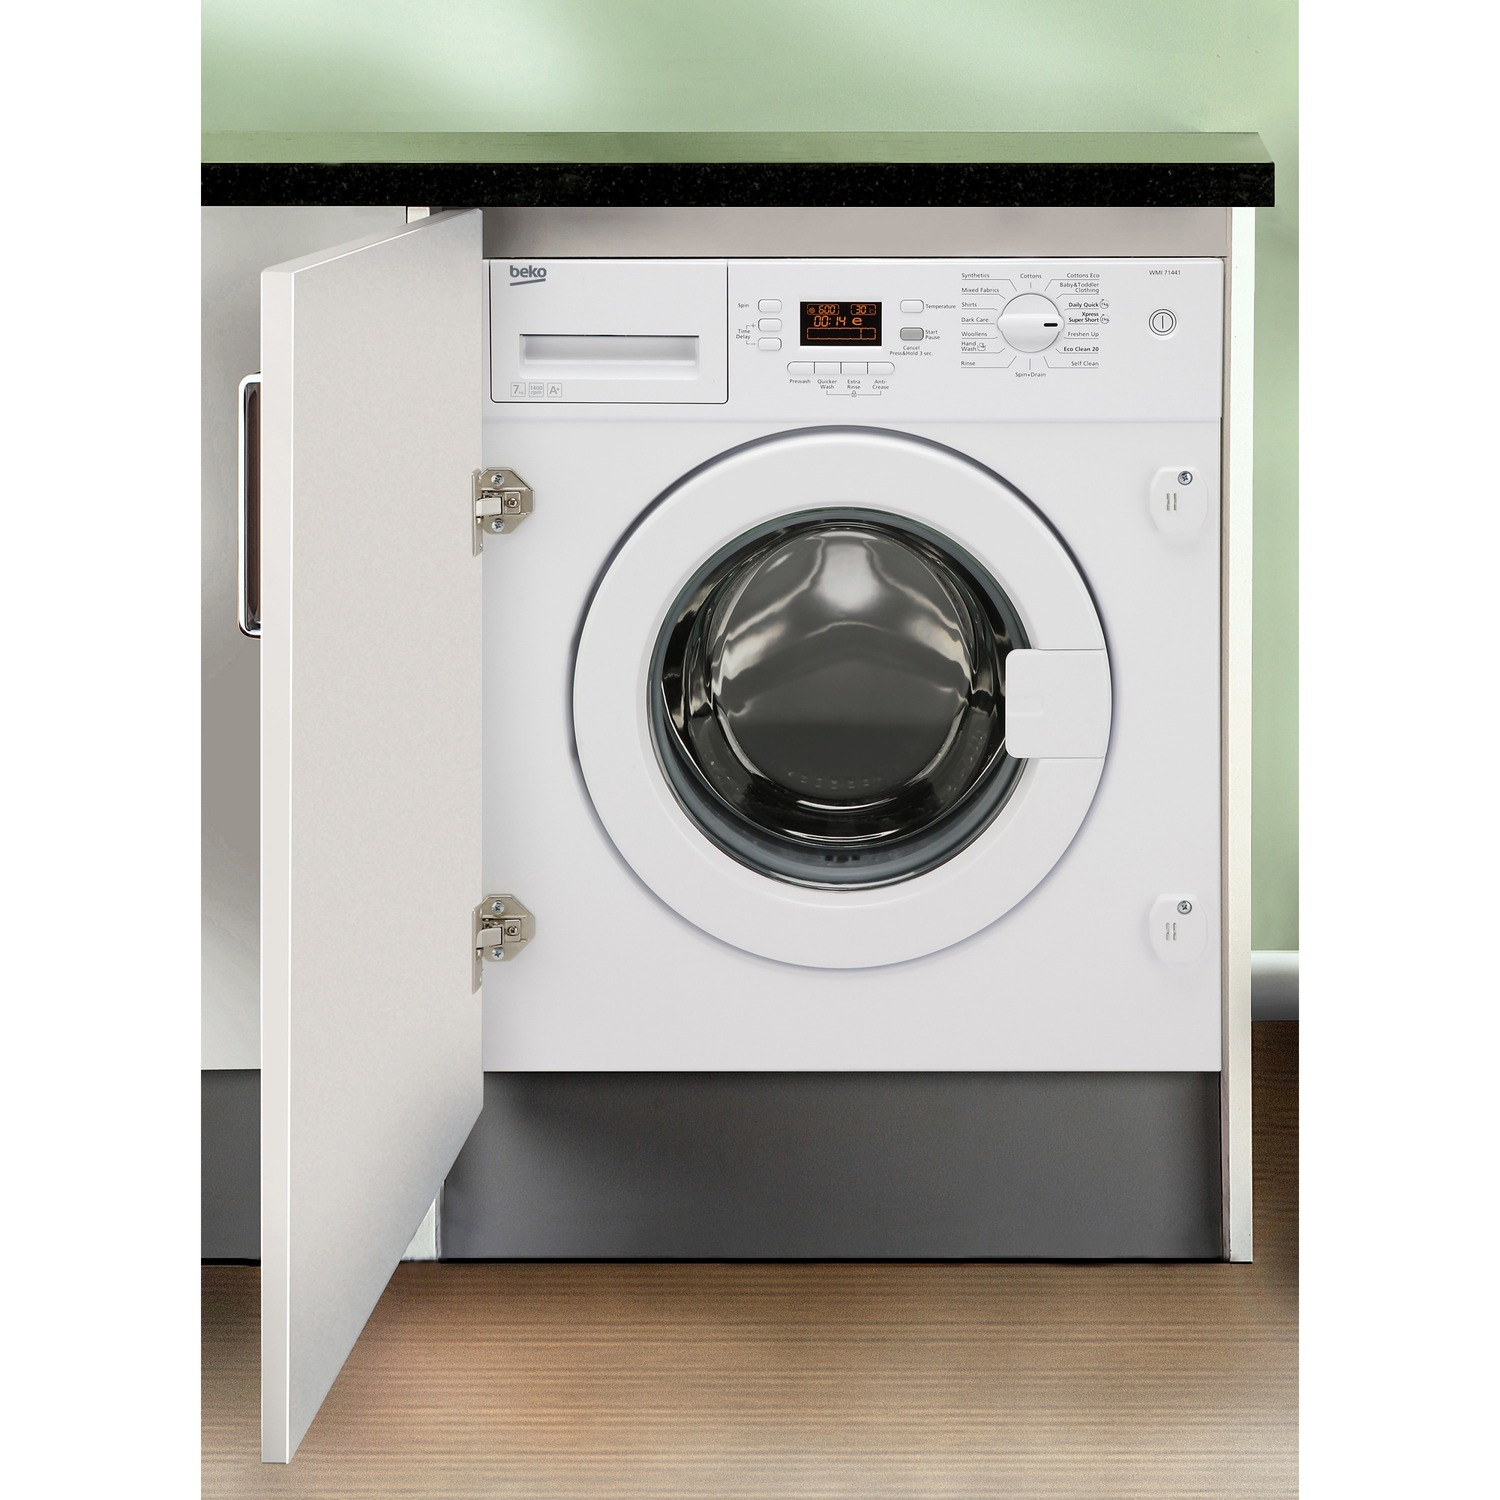 the beko wmi71441 integrated 7kg washing machine